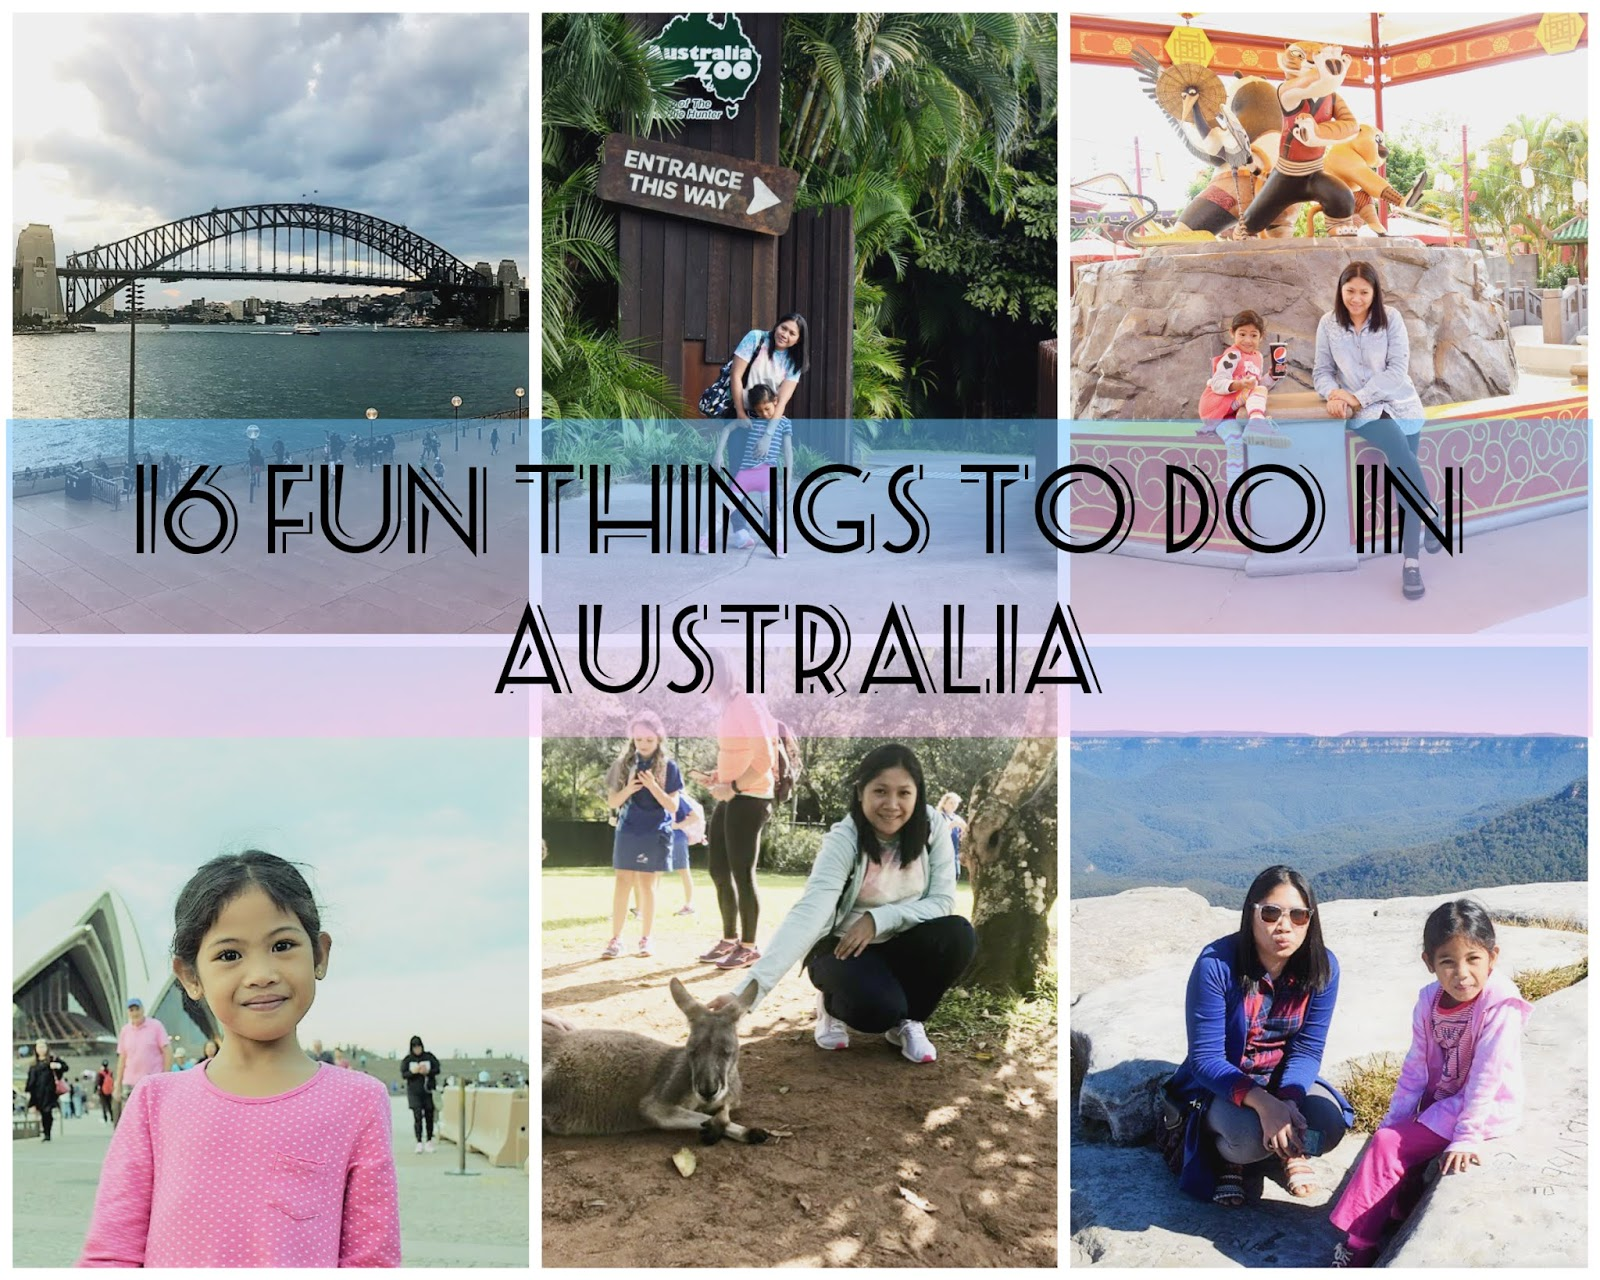 16 Fun Things to do In Australia